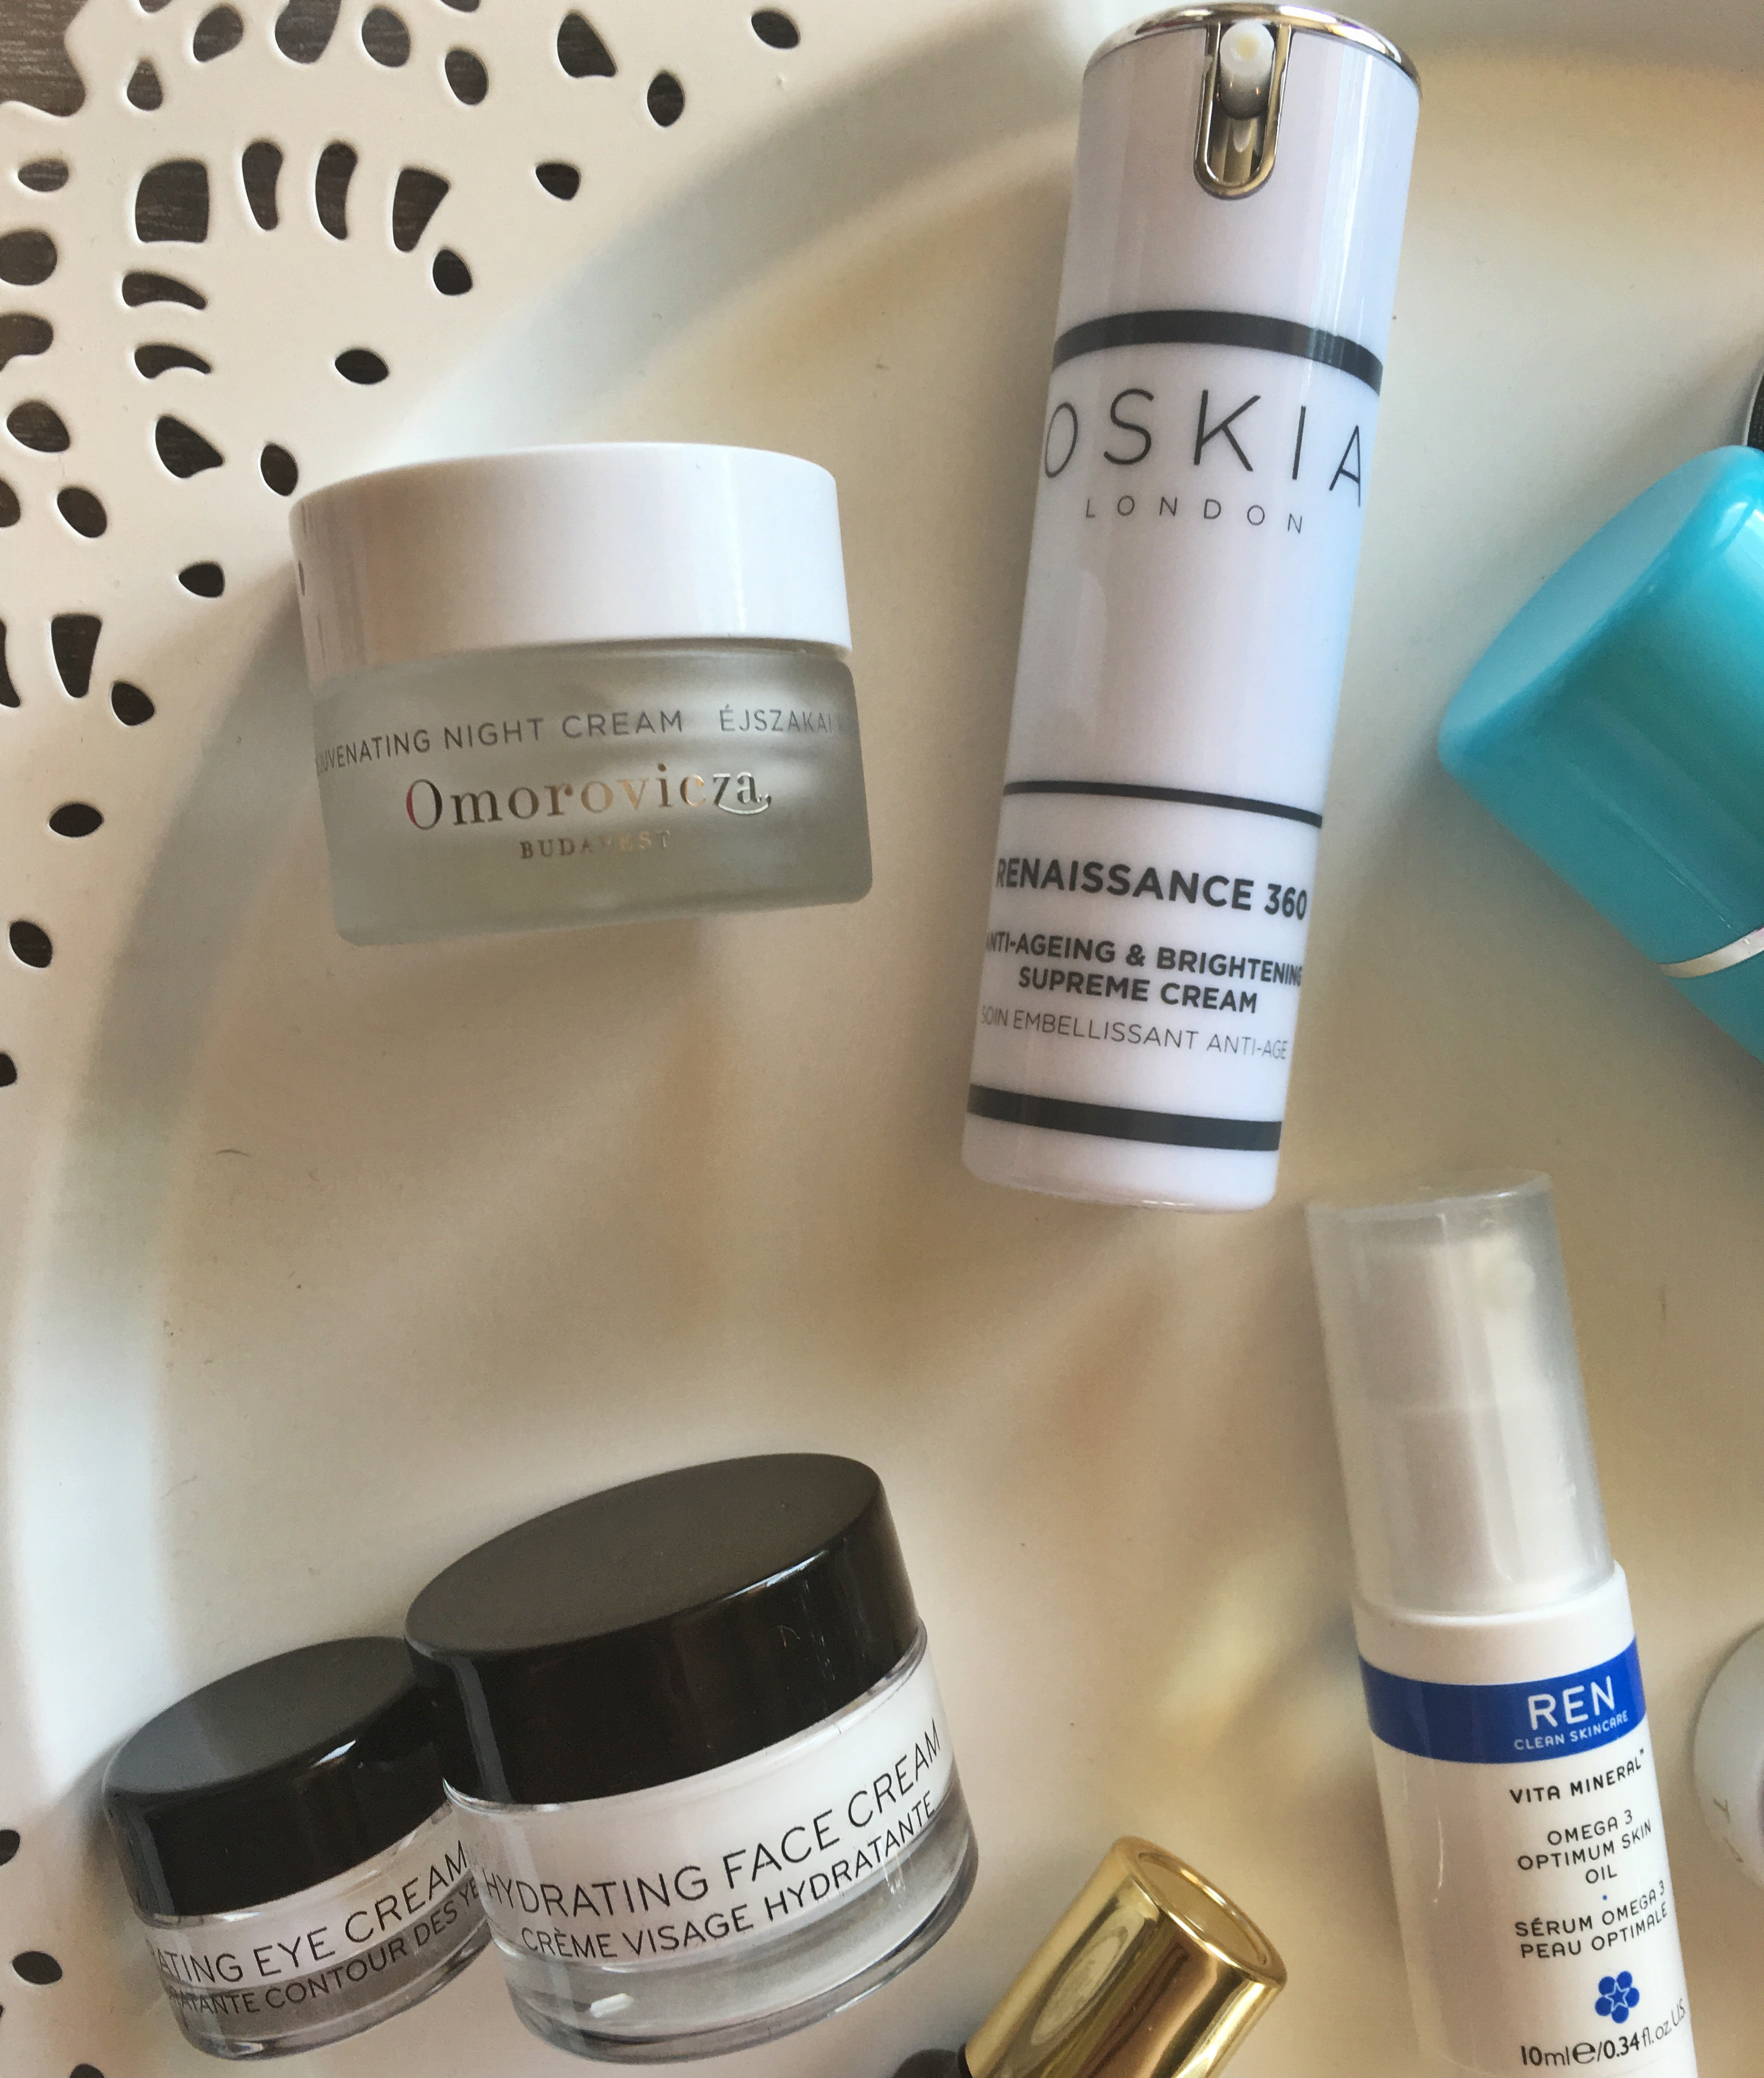 Omorovicza, Oskia, Bobbi Brown